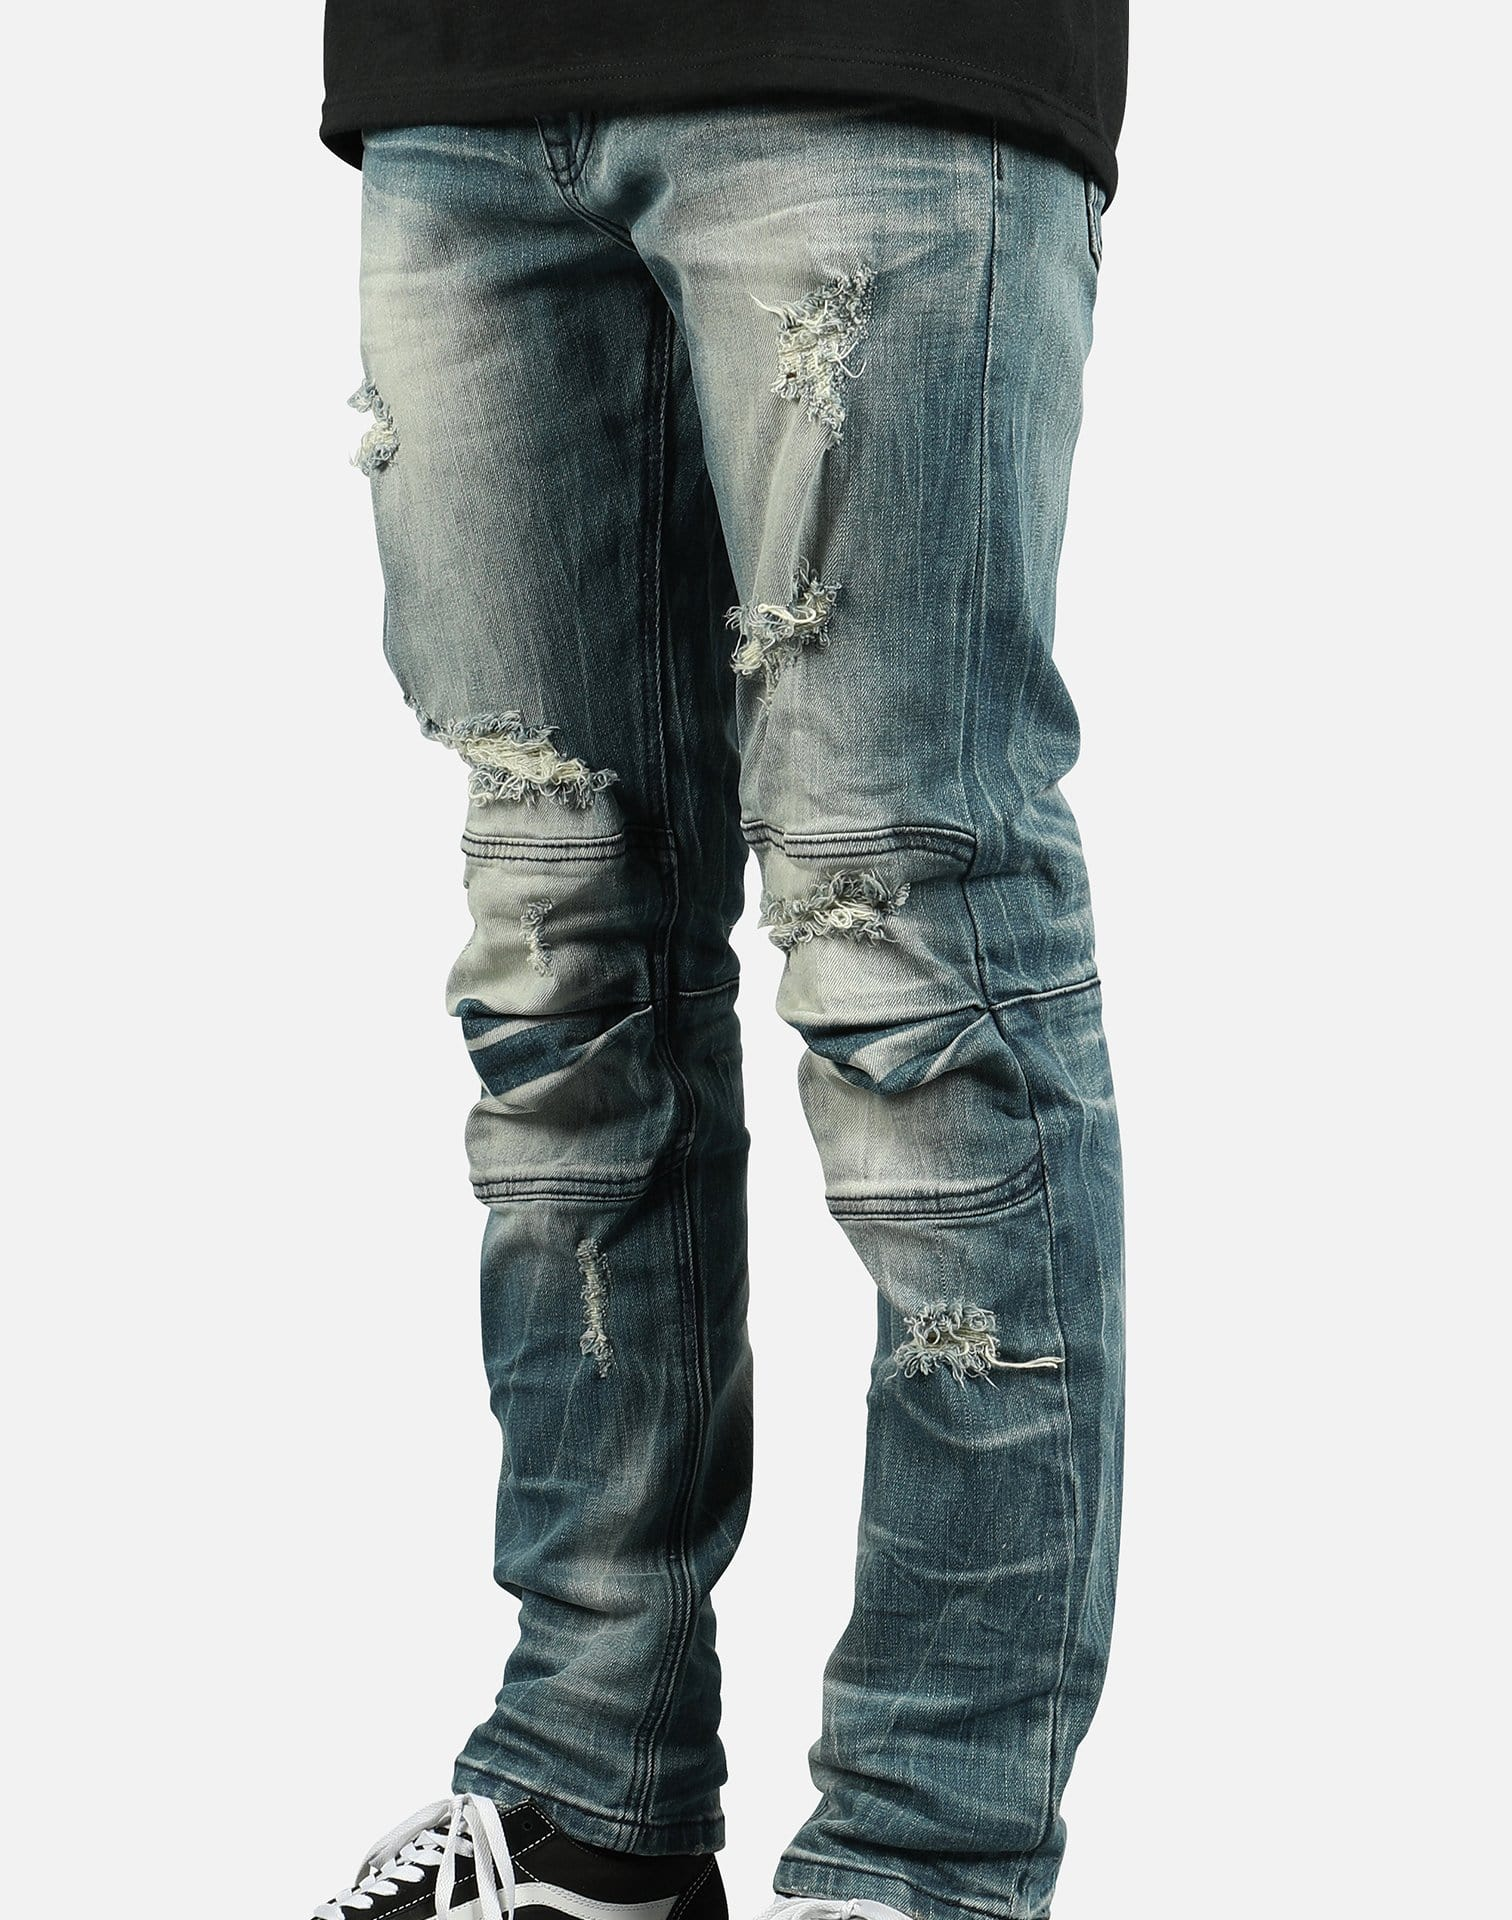 Smoke Rise Men's Distressed Knee Jeans